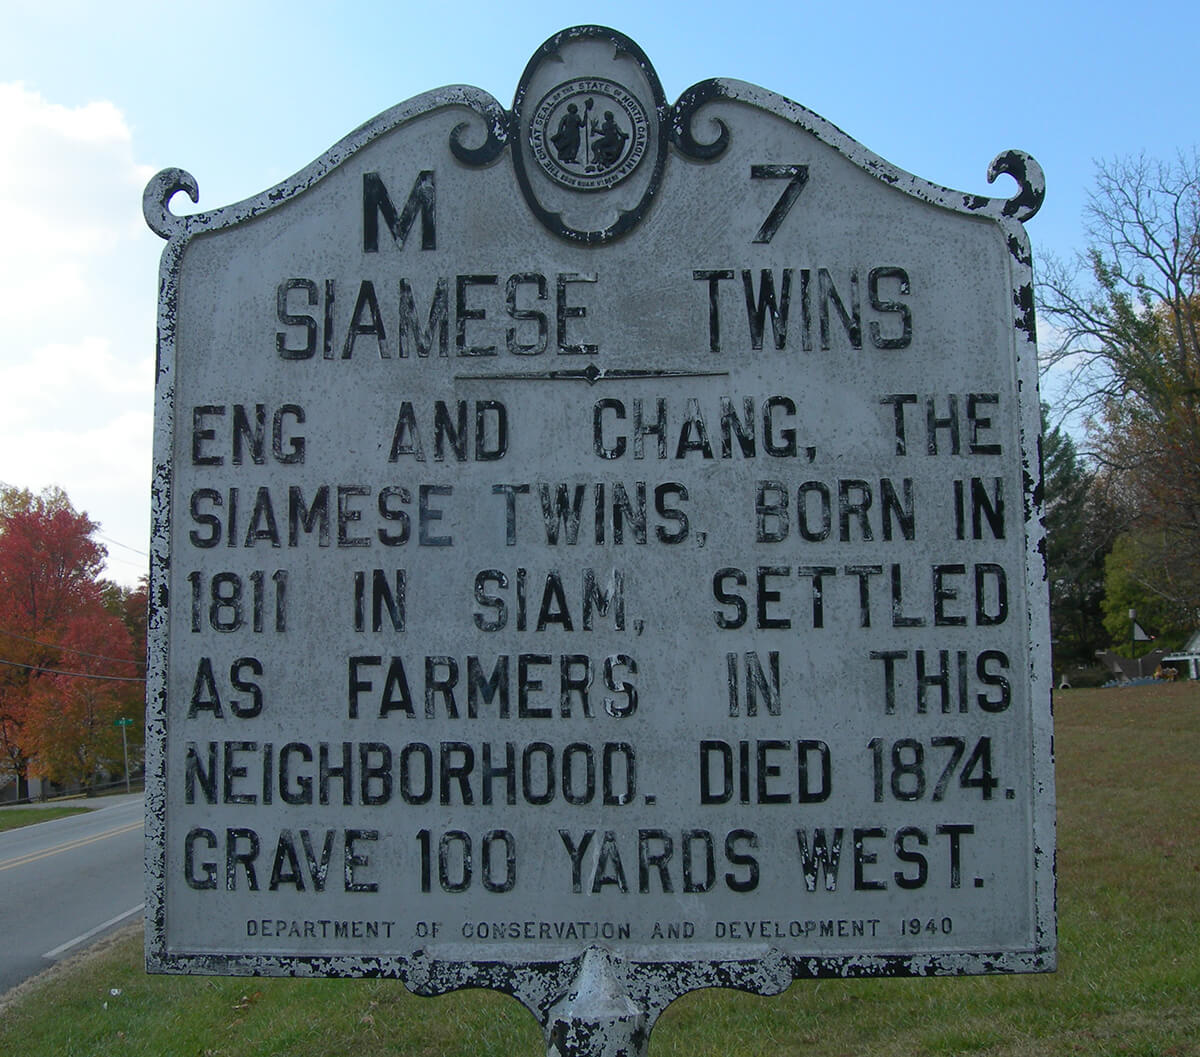 Siamese Twins Historic Marker, White Plains, North Carolina, November 10, 2007. Photograph by Flickr user Jimmy Emerson, DVM. Creative Commons license CC BY-NC-ND 2.0.